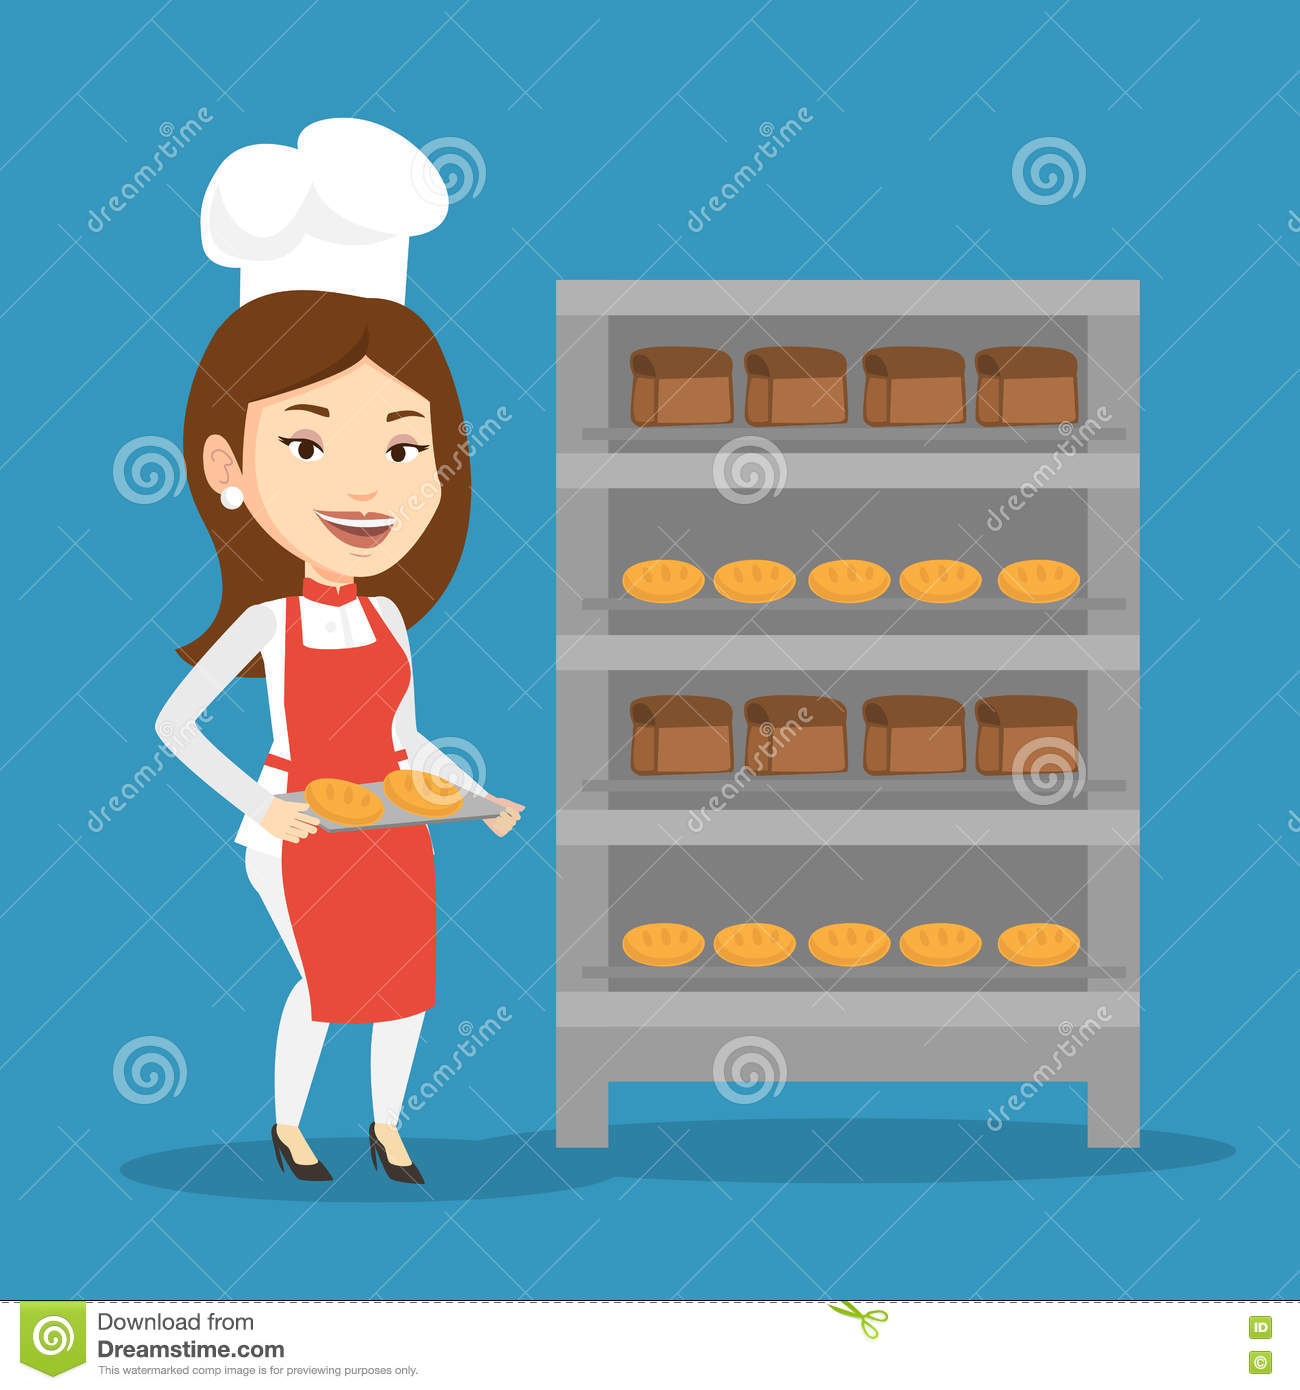 How To Make Kitchen Rack At Home Happy Young Baker Holding A Tray With Bread Cartoon